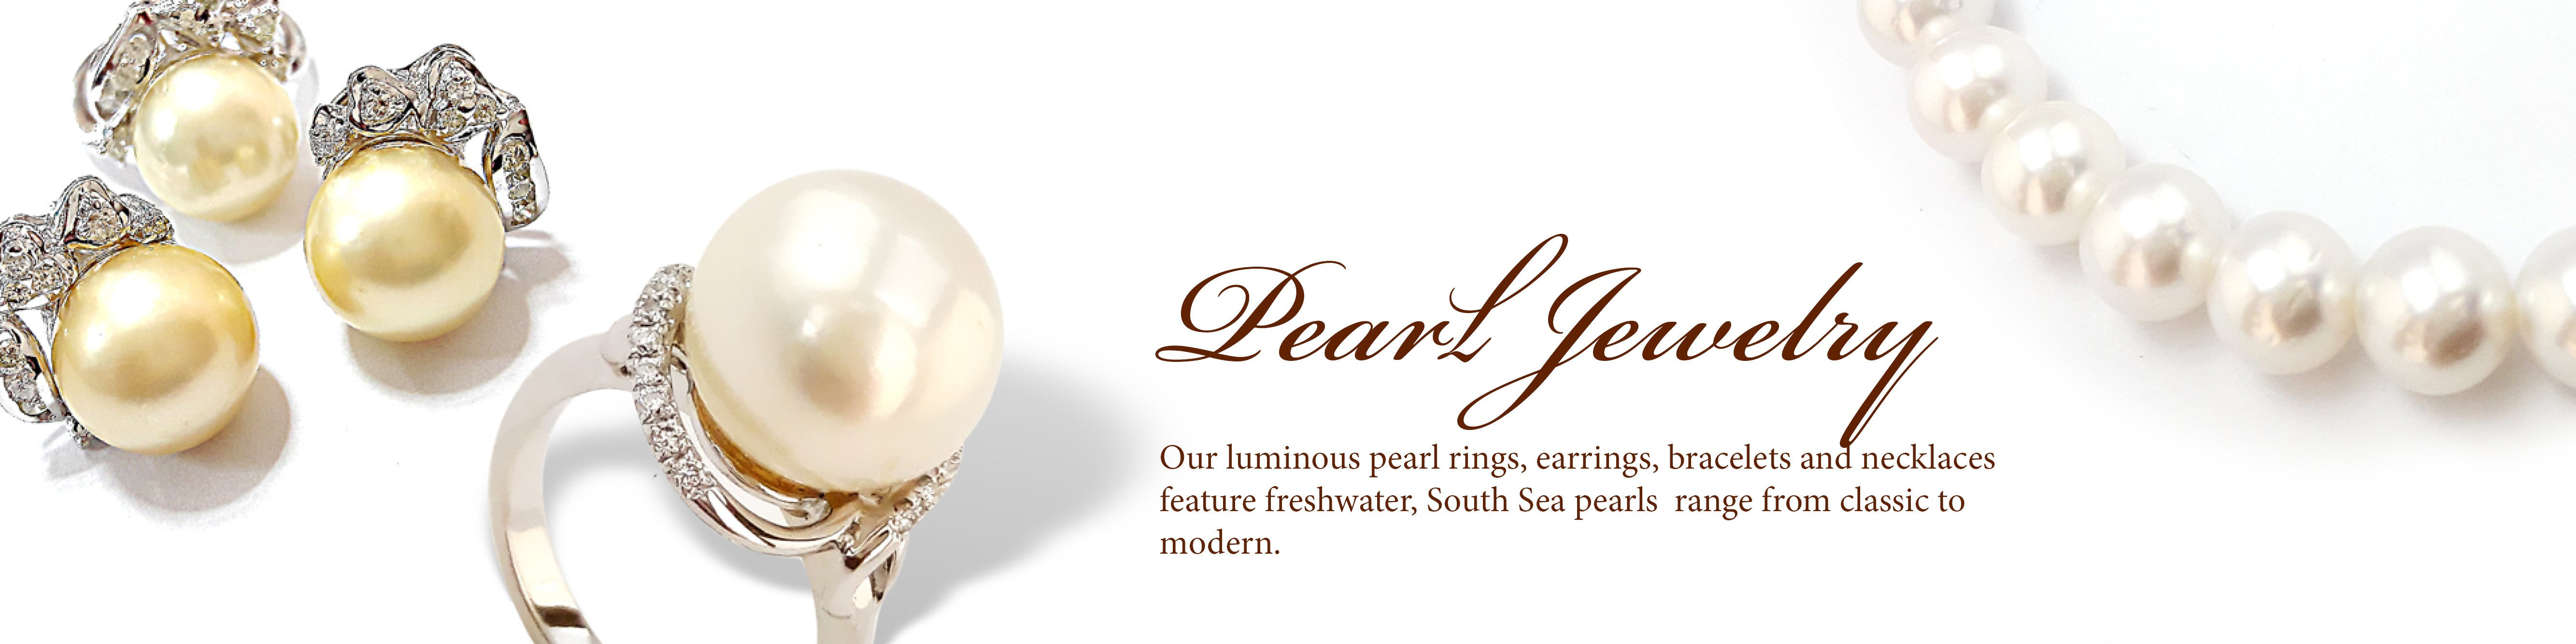 Pearl Jewelry Collection Cover Photo